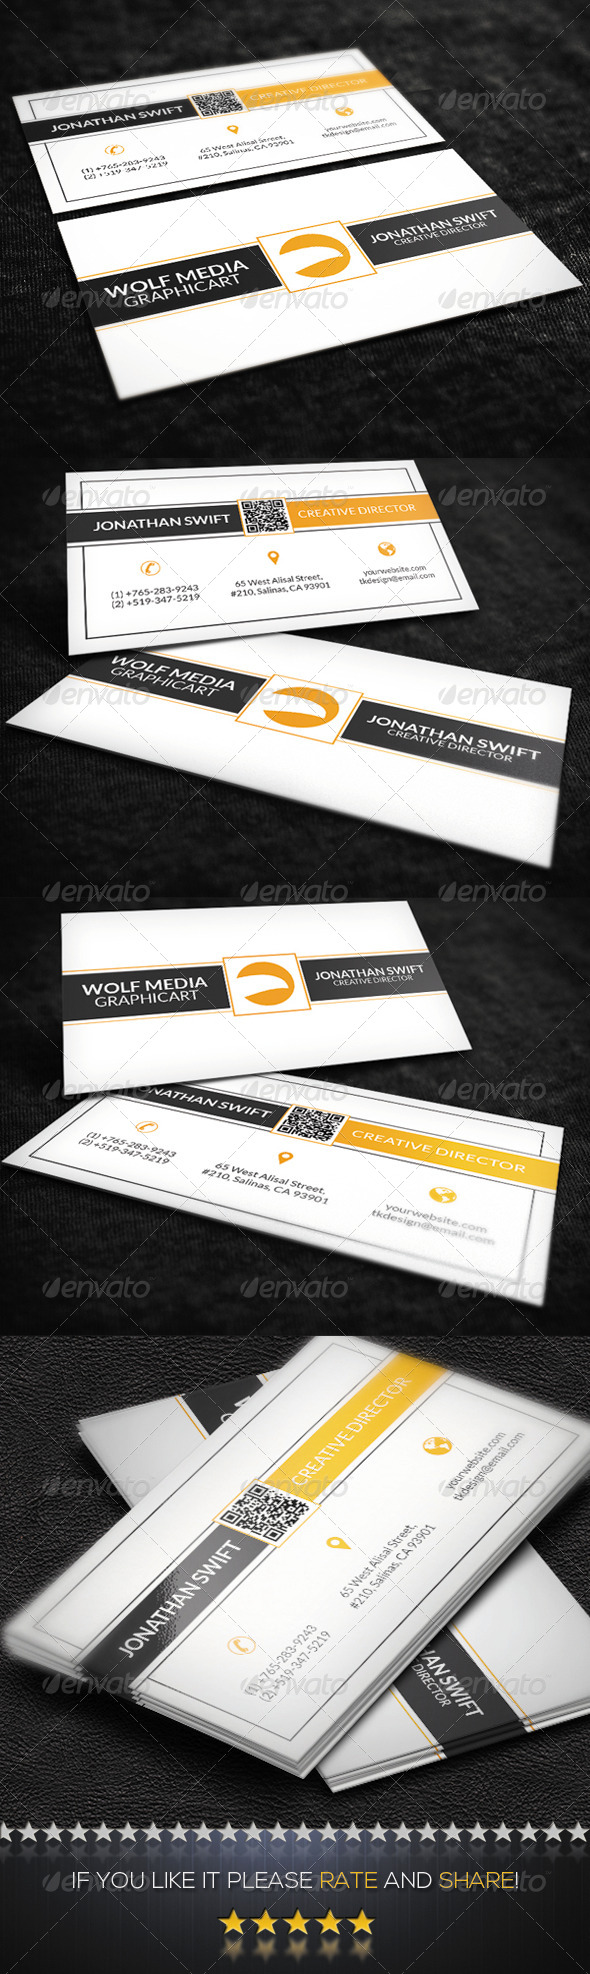 GraphicRiver Clean Corporate Business Card 8759154